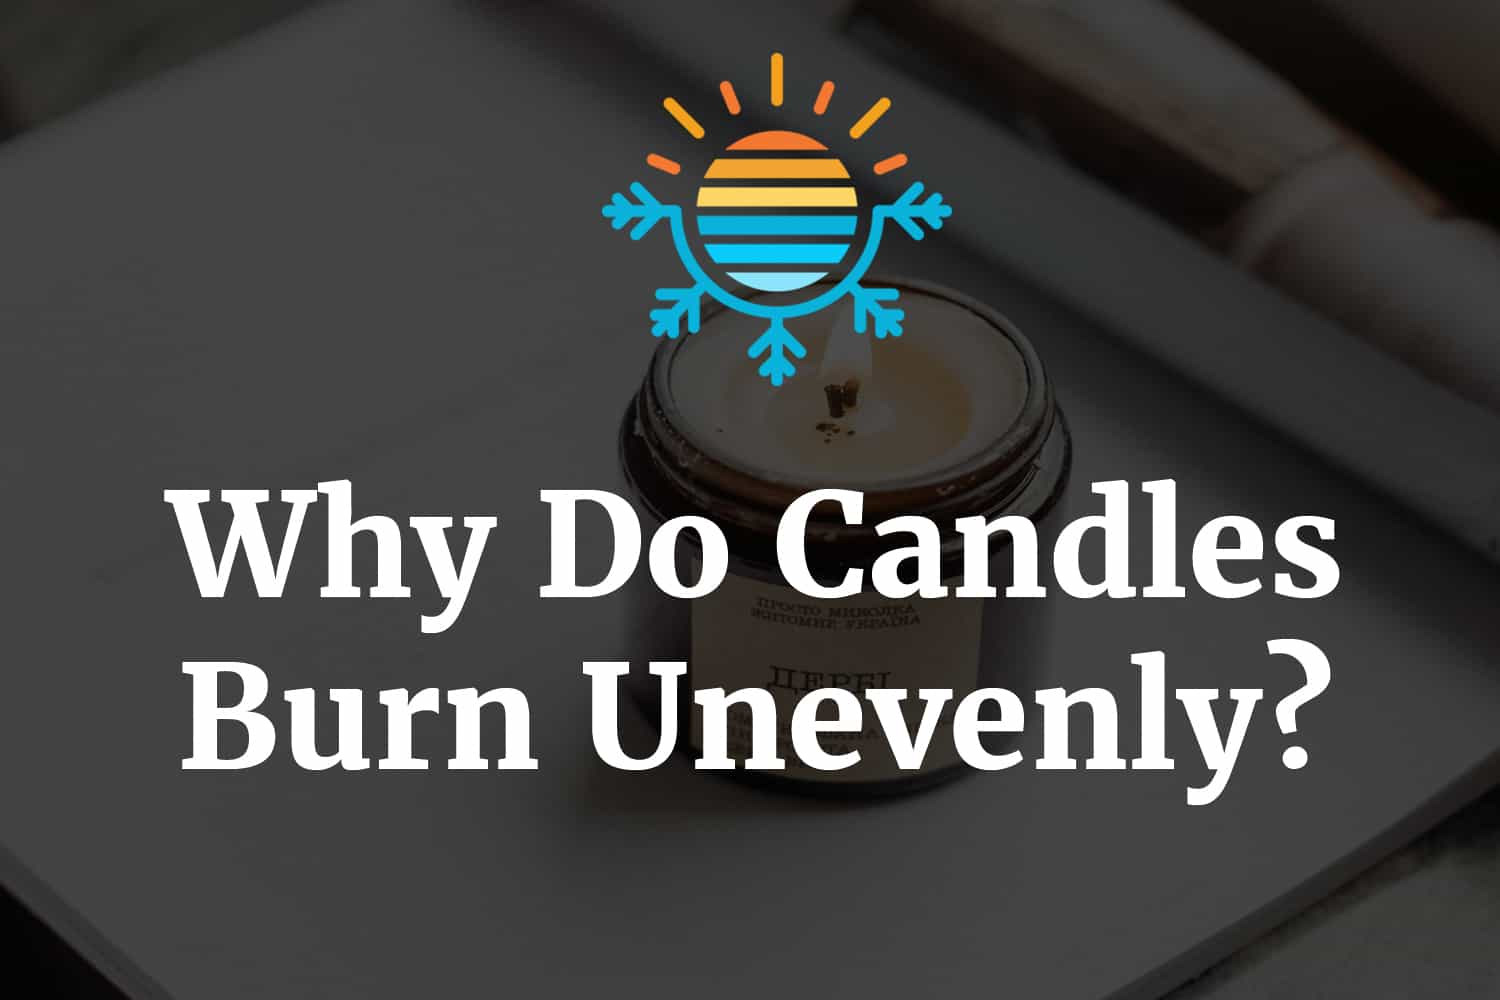 Why do candle burn unevenly